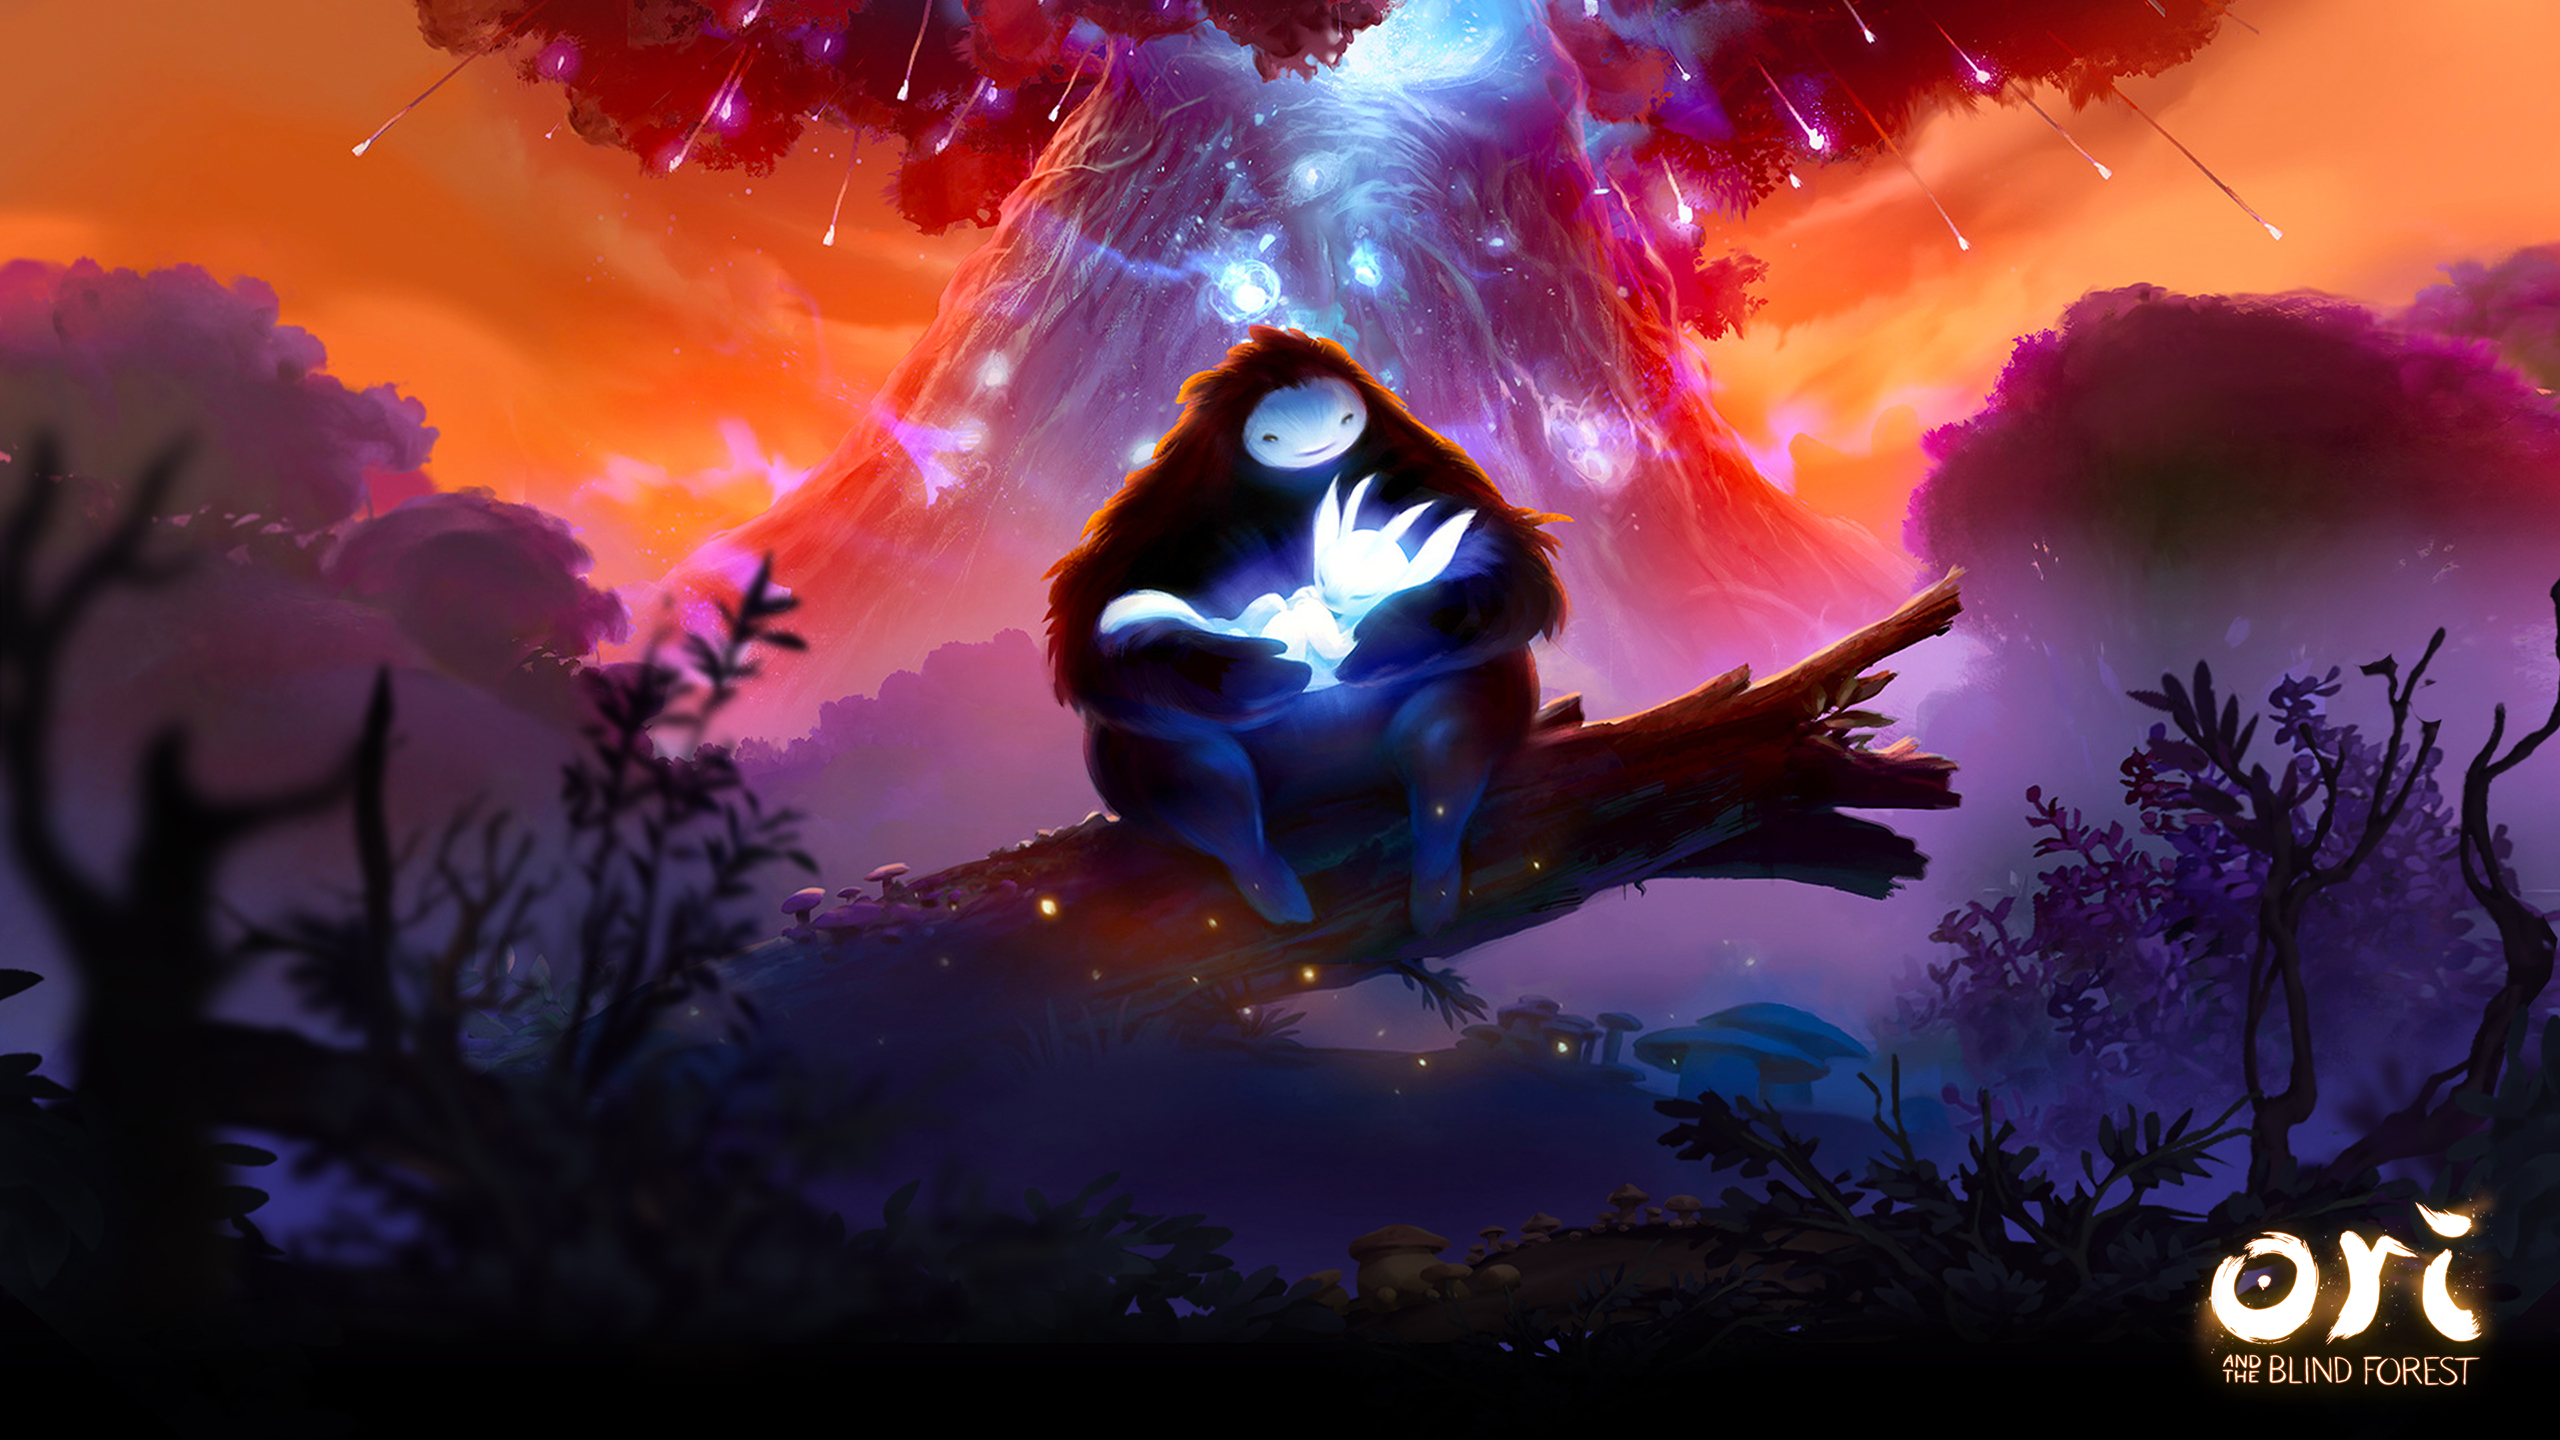 Ori And The Blind Forest Cover Wallpaper Cat With Monocle